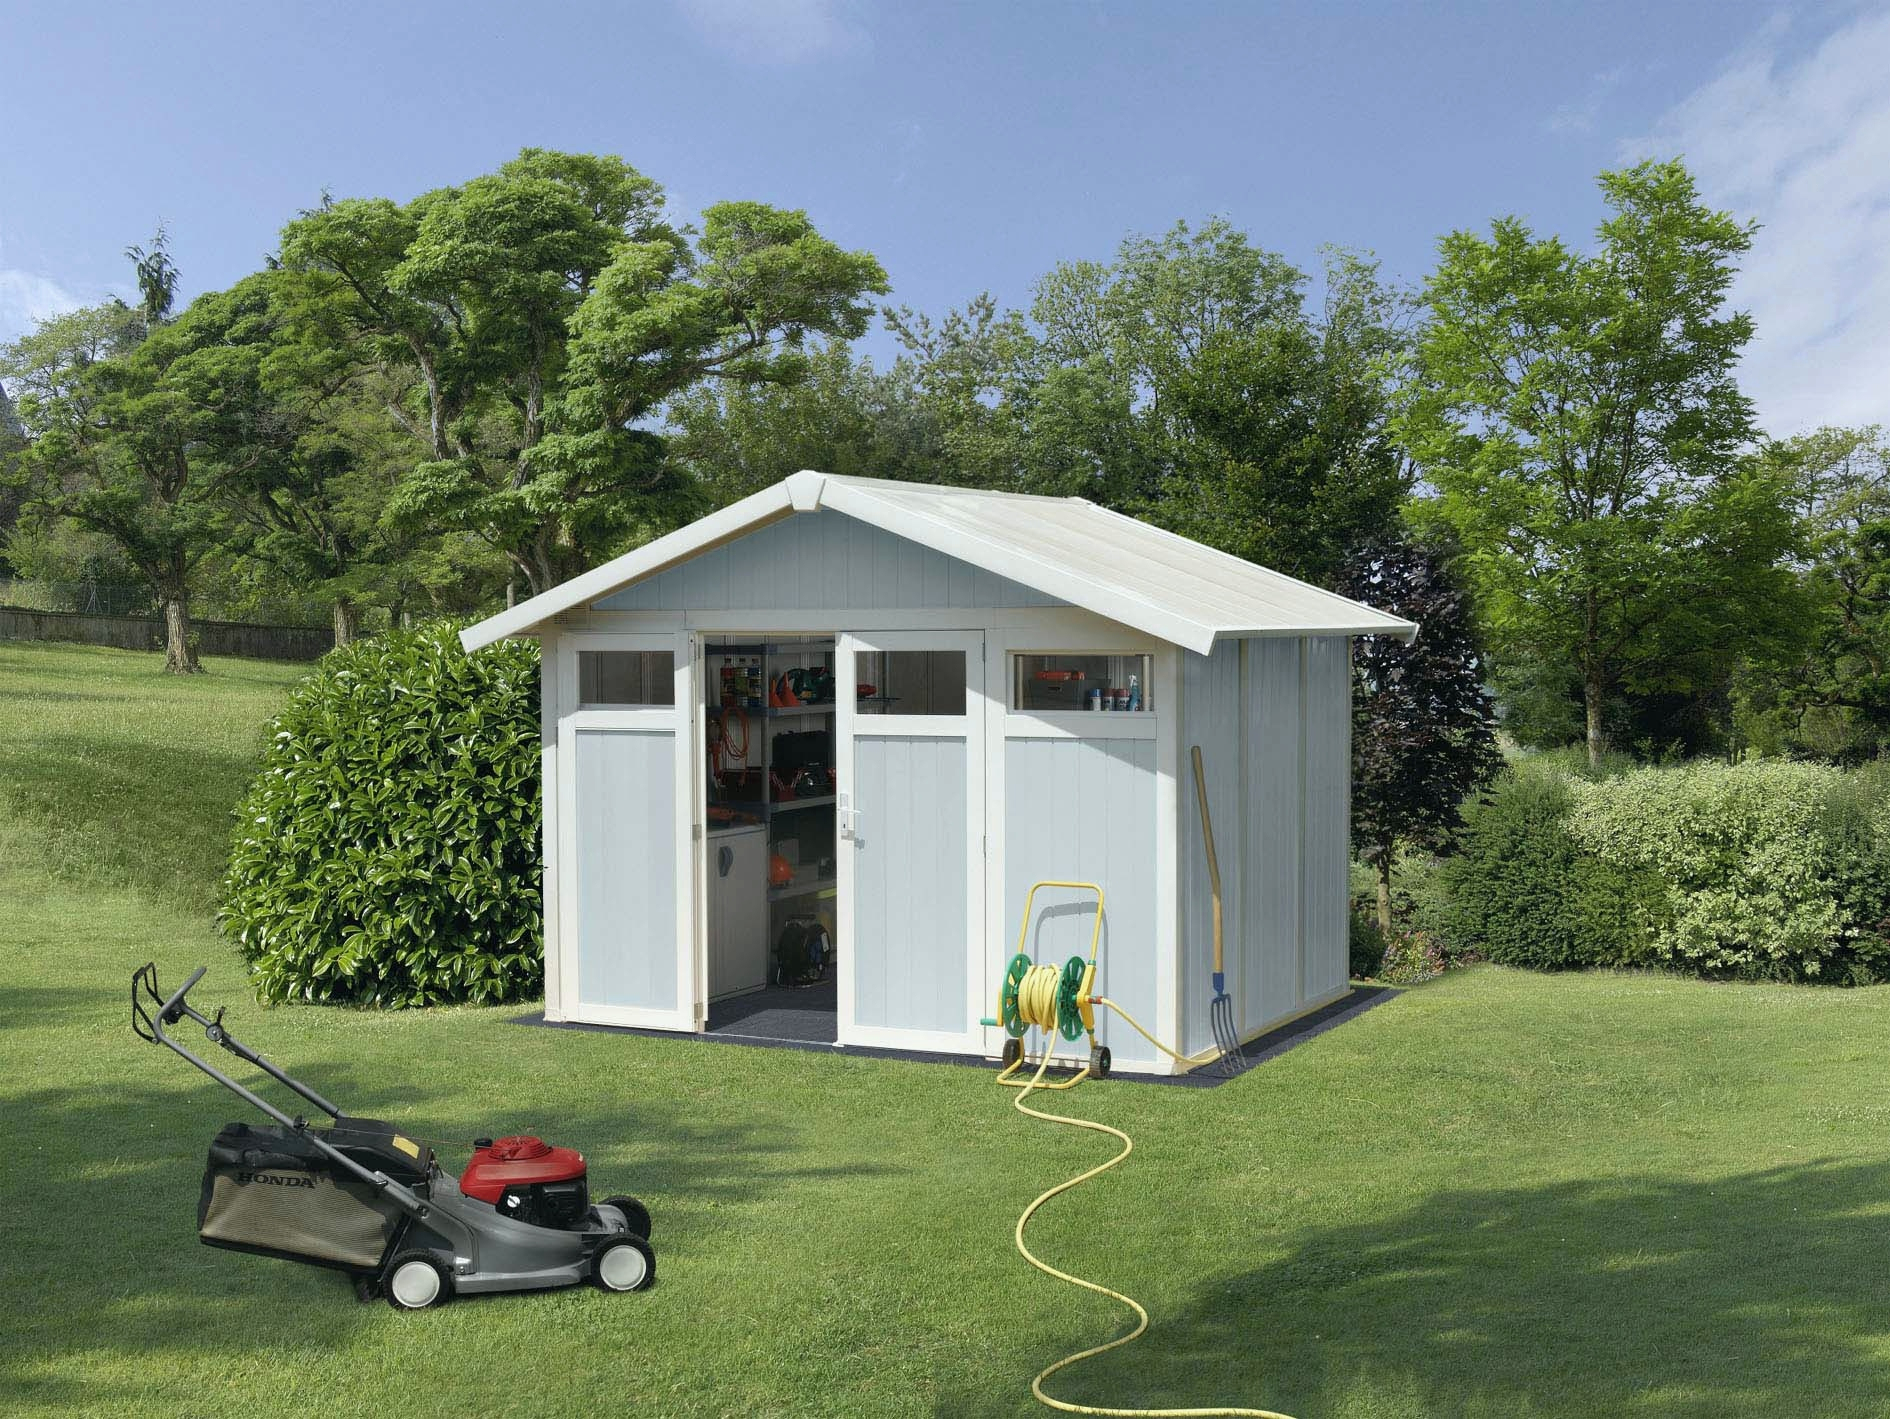 Bordure Modulable Brico Depot Frais Photos Construire Un Garage Contre Une Maison